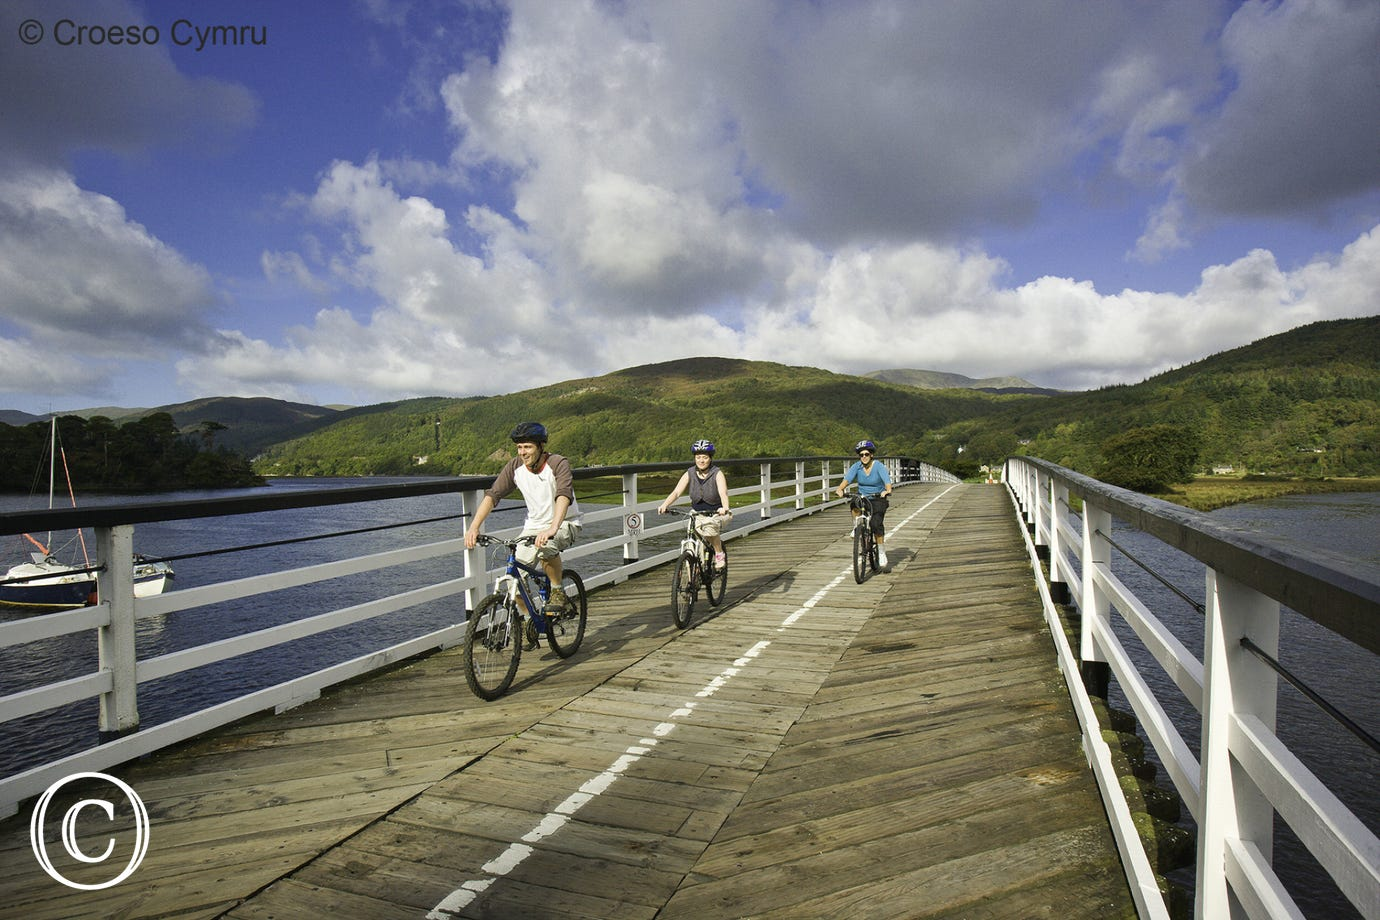 Walk or cycle the scenic Mawddach Trail from Barmouth to Dolgellau